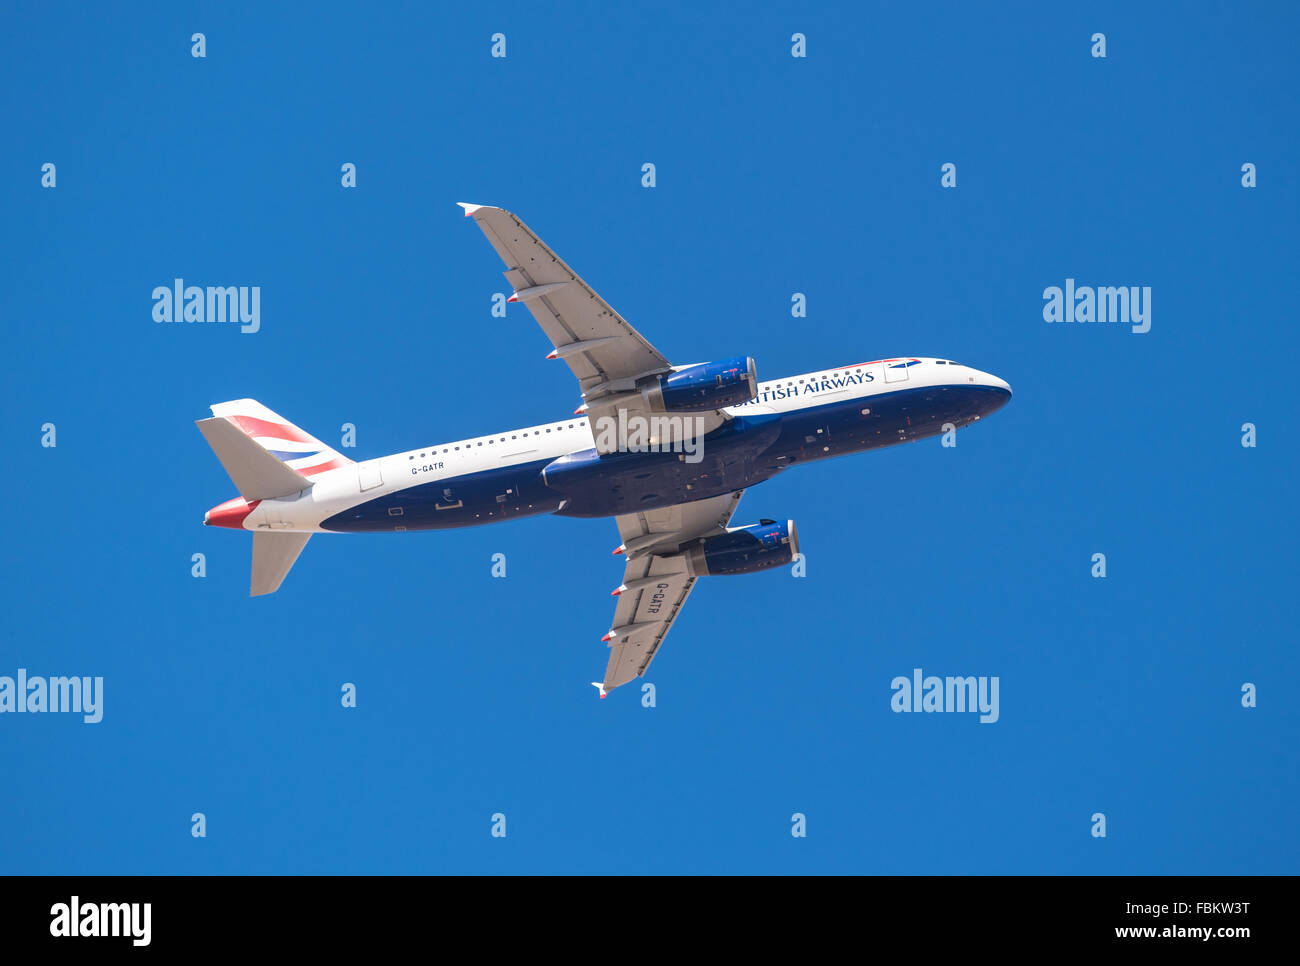 TENERIFE, SPAIN - JANUARY 13: British Airways Airbus 320 is taking off from Tenerife South airport on January 13, - Stock Image